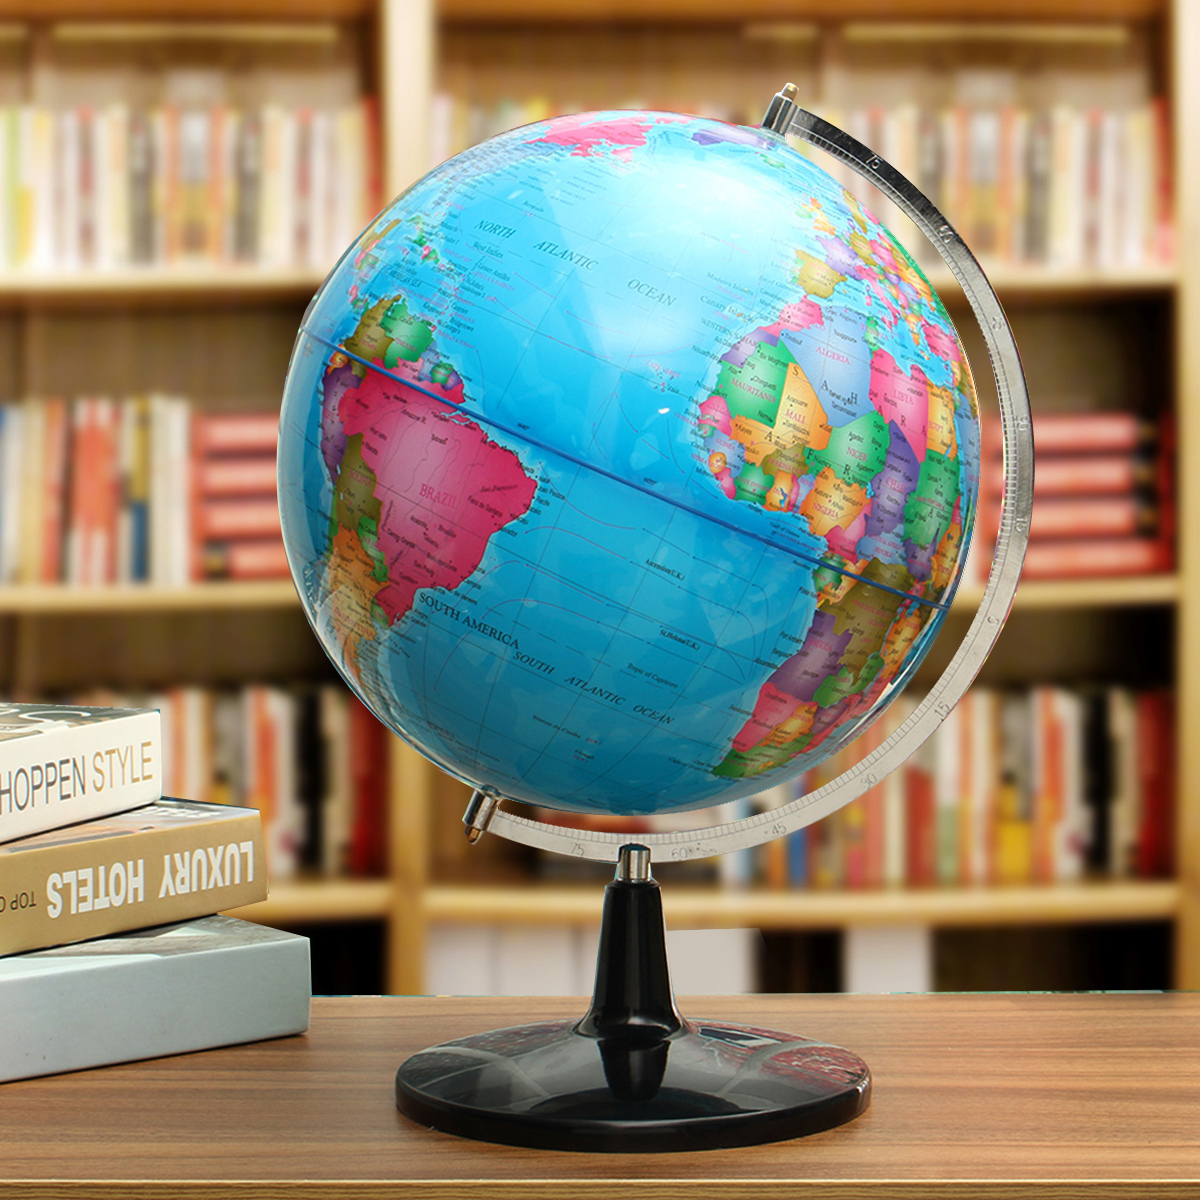 32CM Big Large Rotating Globe World Map With Stand Earth Geography School Educational Tool Home Office Ornament Gift